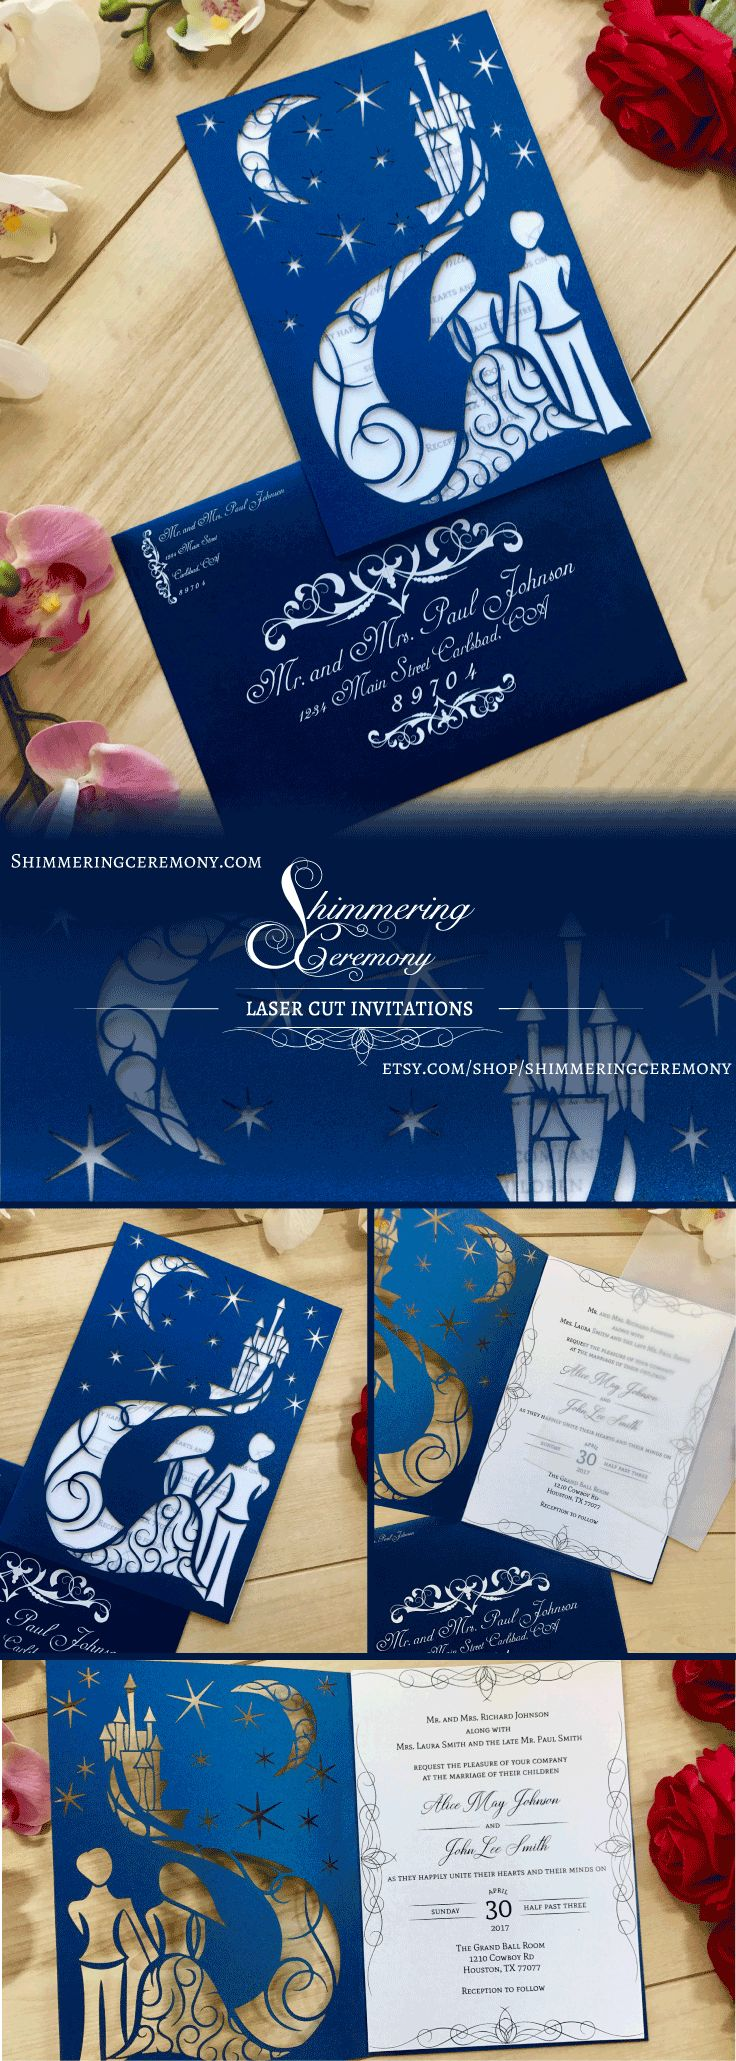 fairytale bridal shower invitation wording%0A Invite your guests to your happily ever after with the fairytale laser cut  invitation available now   fairytale  wedding  castle  starrynight  stars   moon